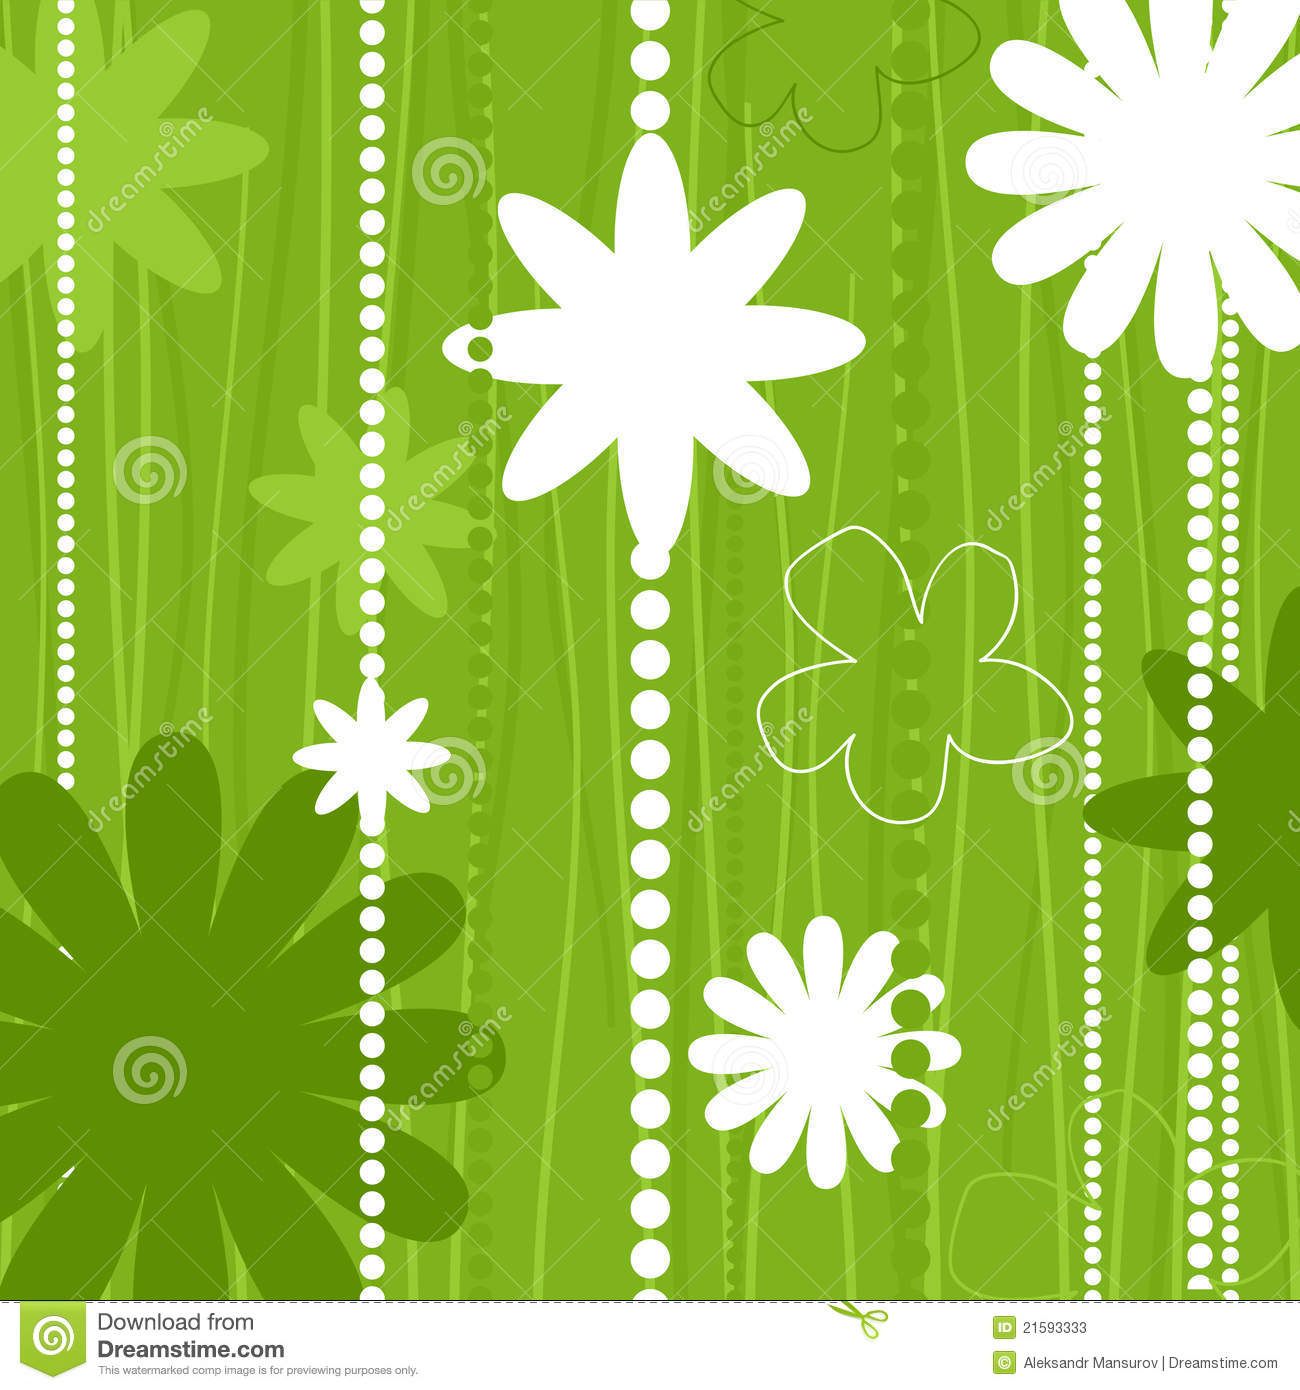 flower background with structure - photo #8